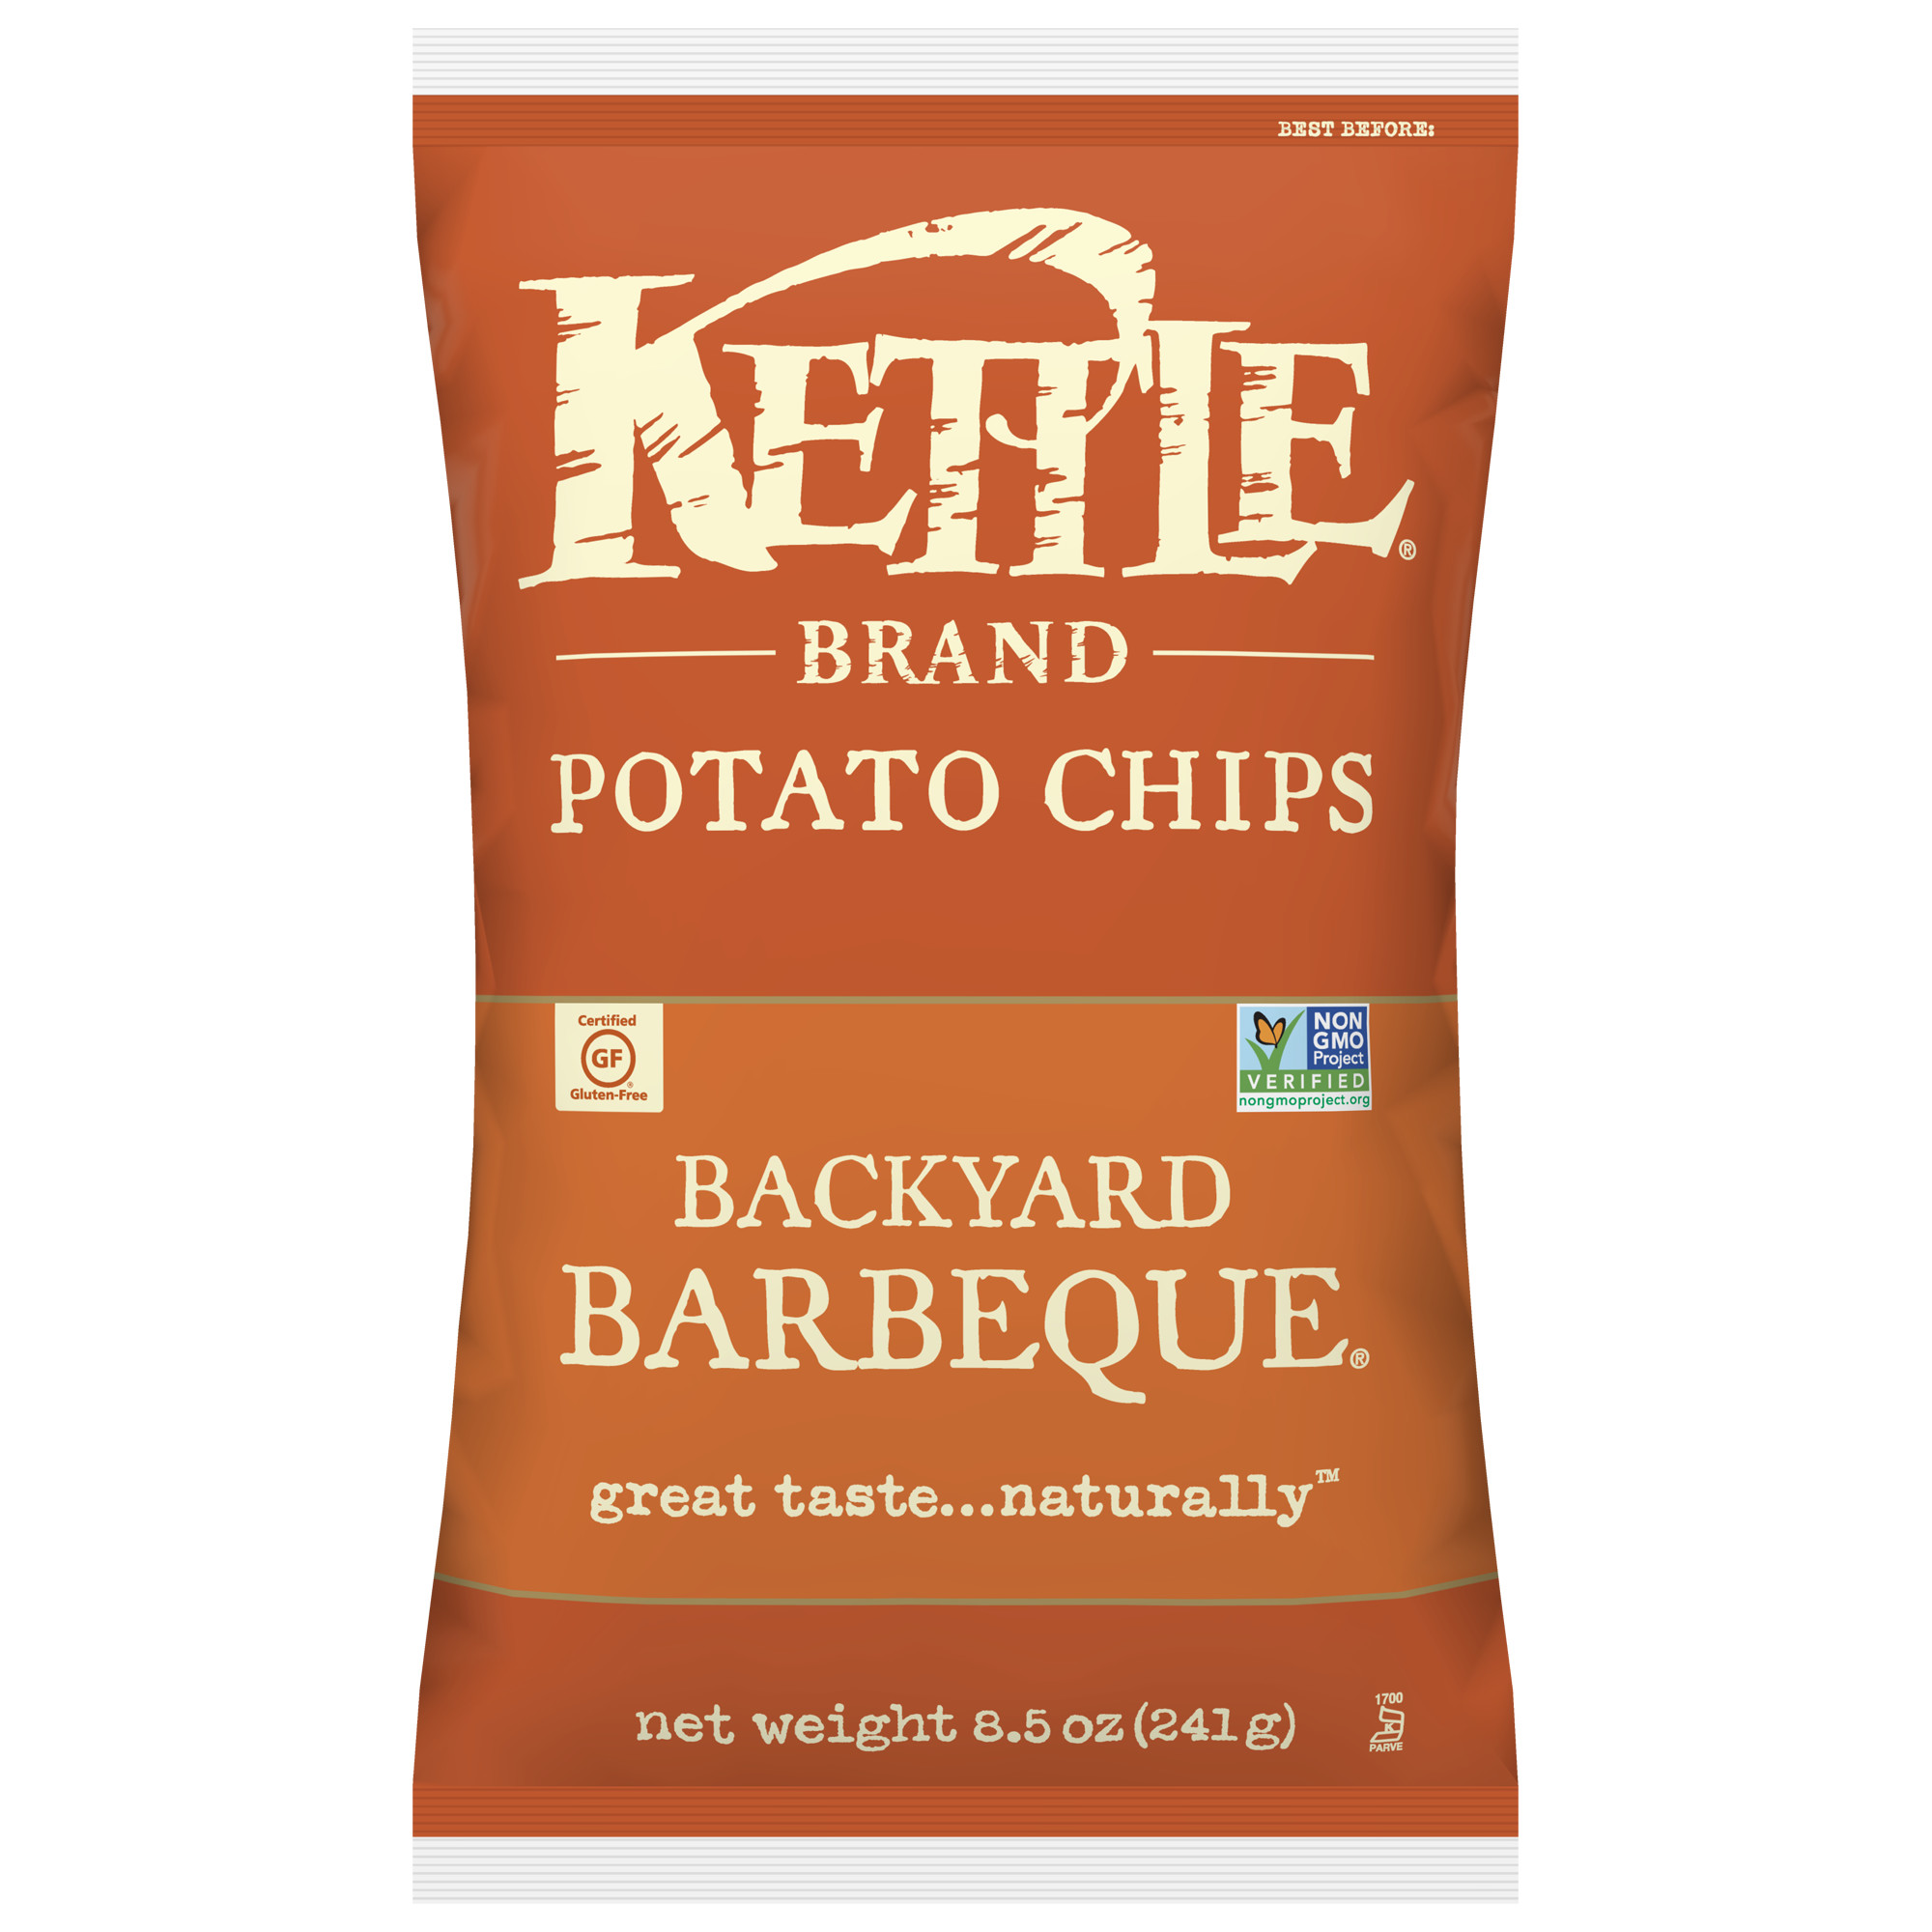 Kettle Brand Potato Chips, Backyard Barbeque, 8.5 Oz